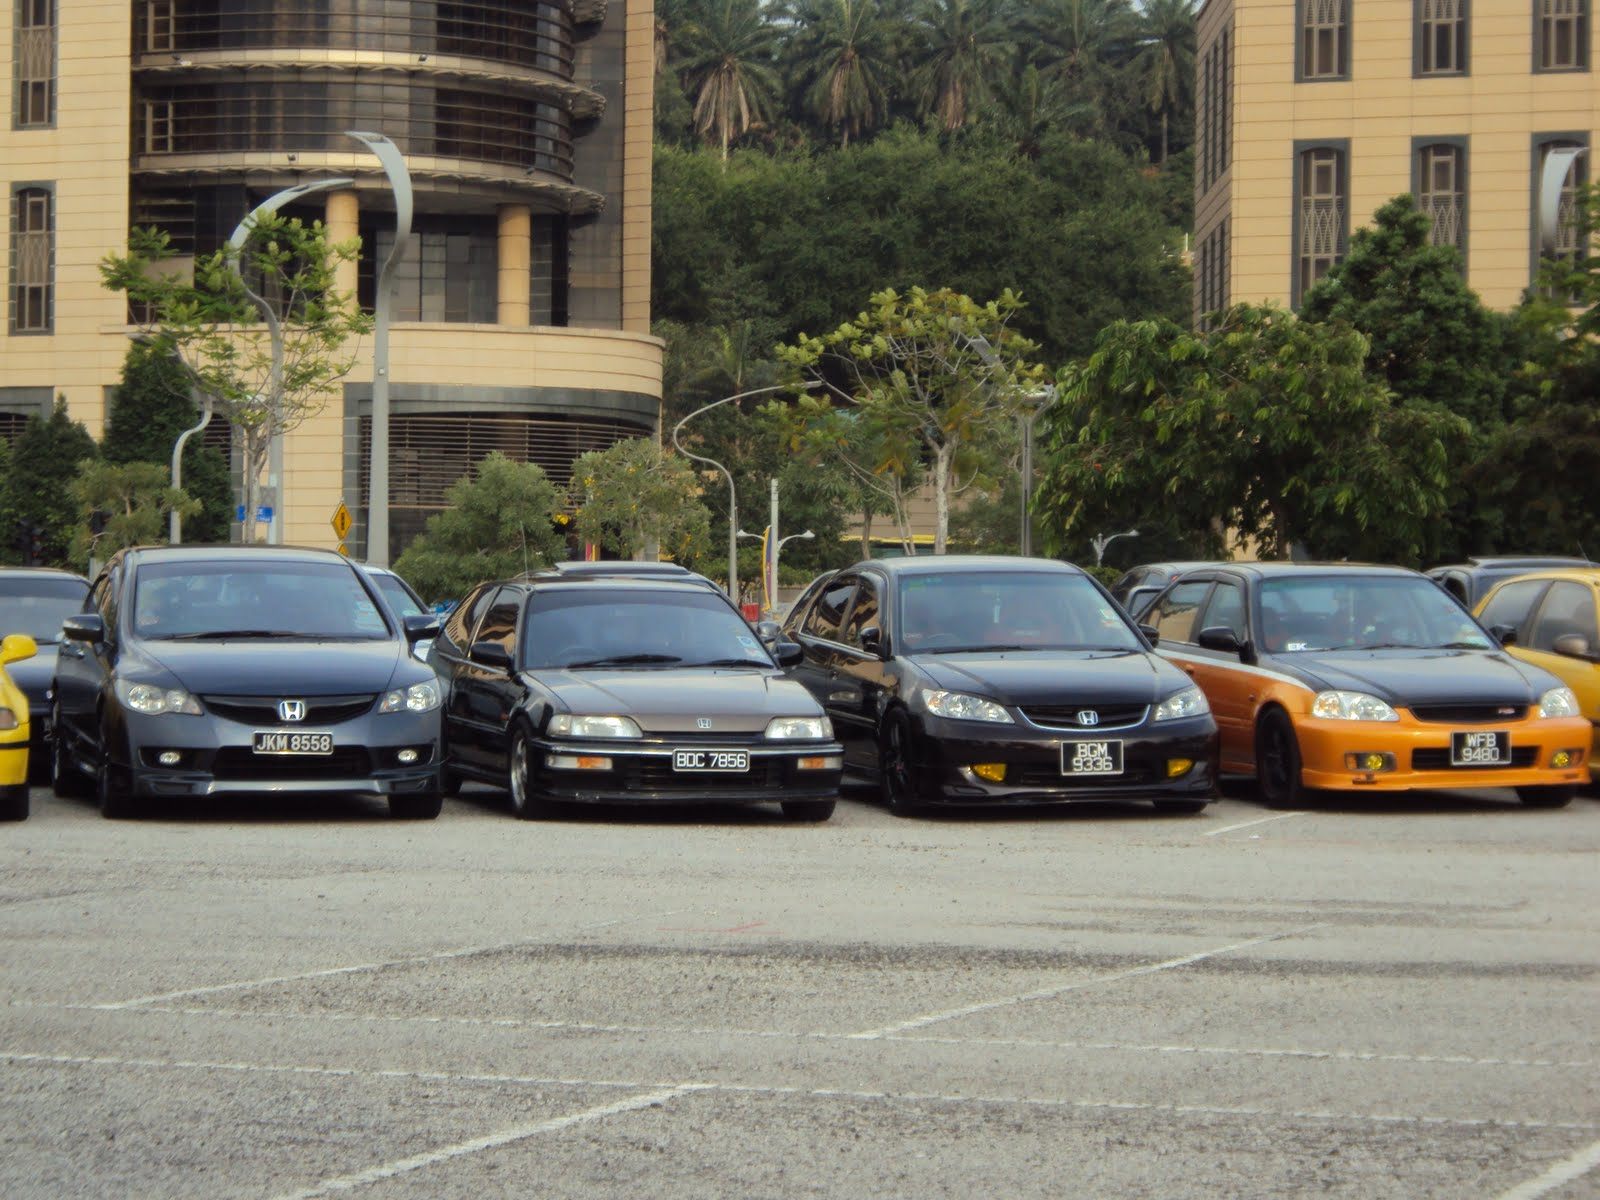 Civic Clubs Imperial Beach Mail: AInMuCuXx'S BL0g: MaLaYsIaN HOnDa CiViC CLuB